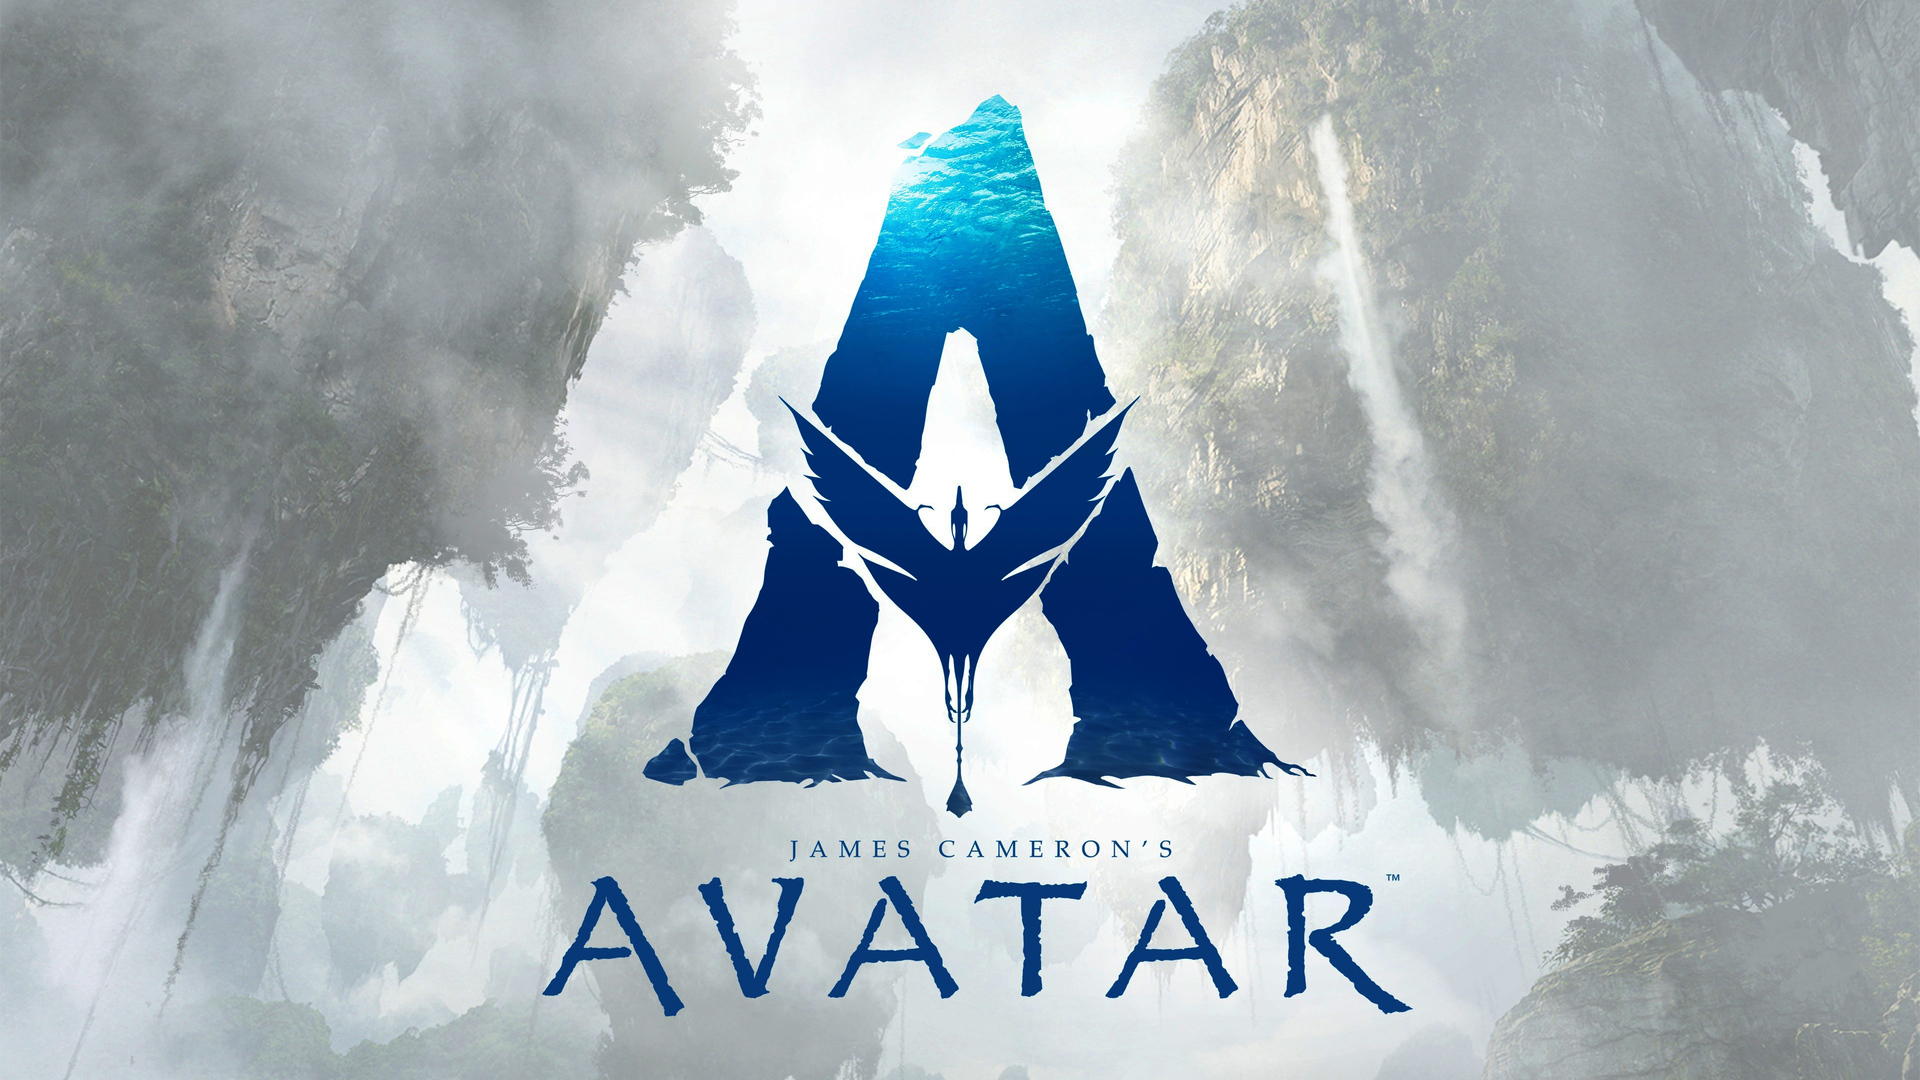 1920x1080 avatar 2 4k laptop full hd 1080p hd 4k wallpapers, images